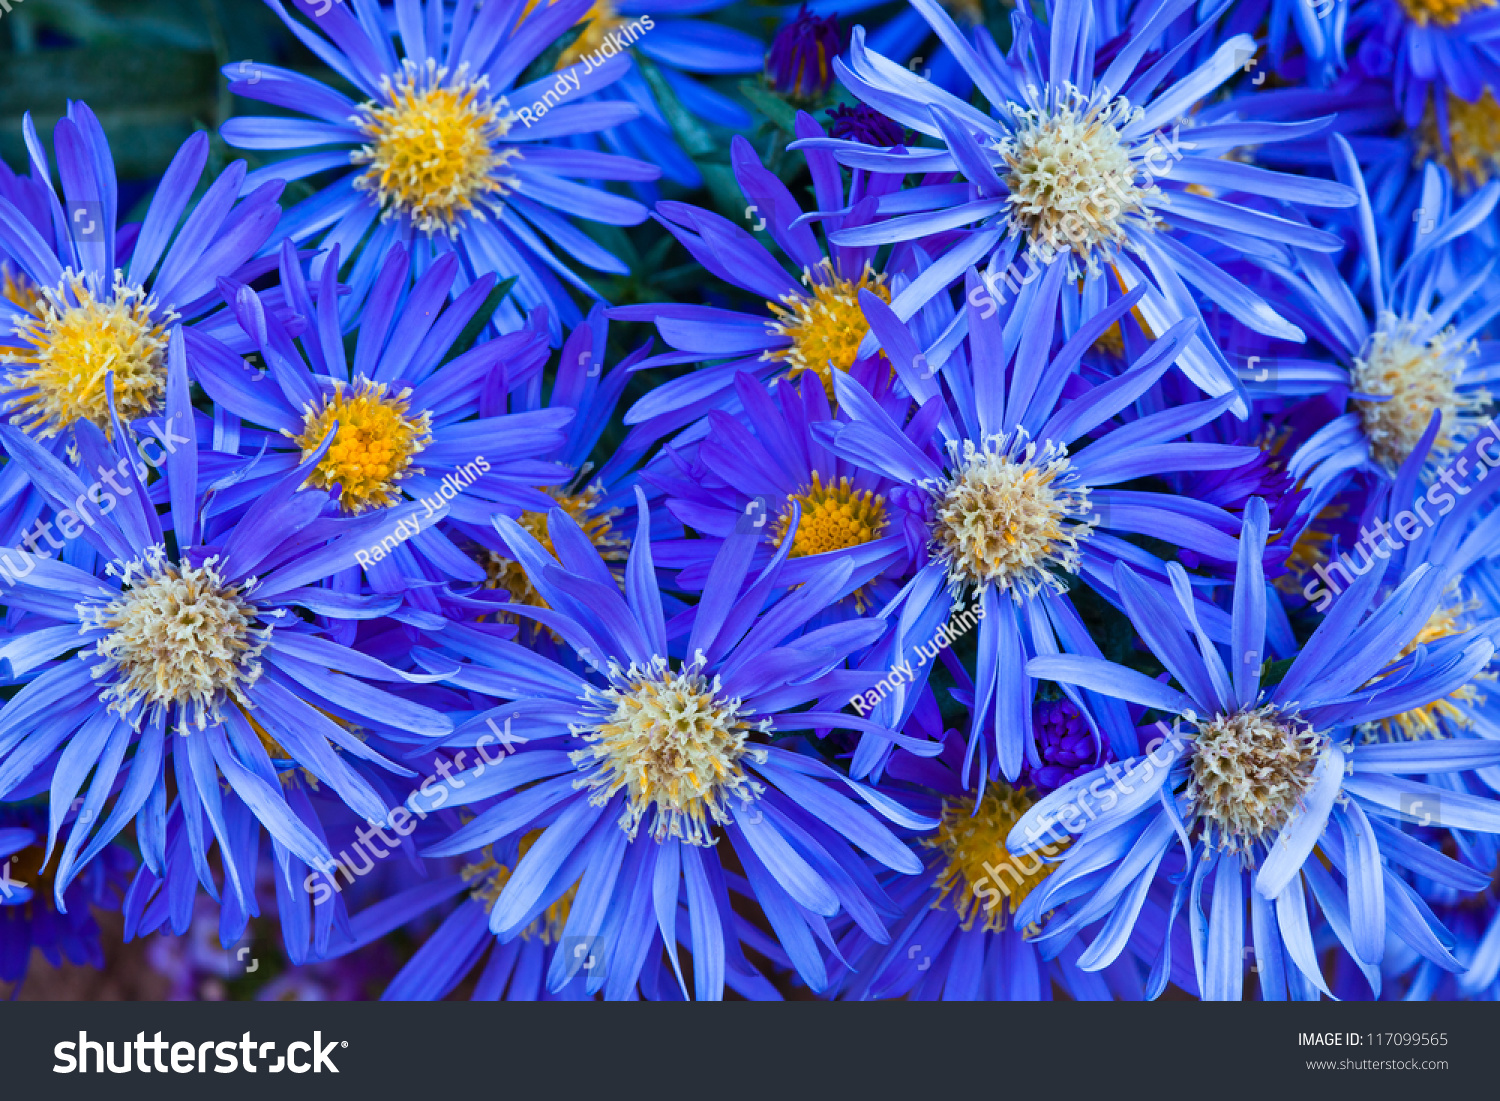 Group Blue Flowers Yellow Centers Stock Photo Edit Now 117099565